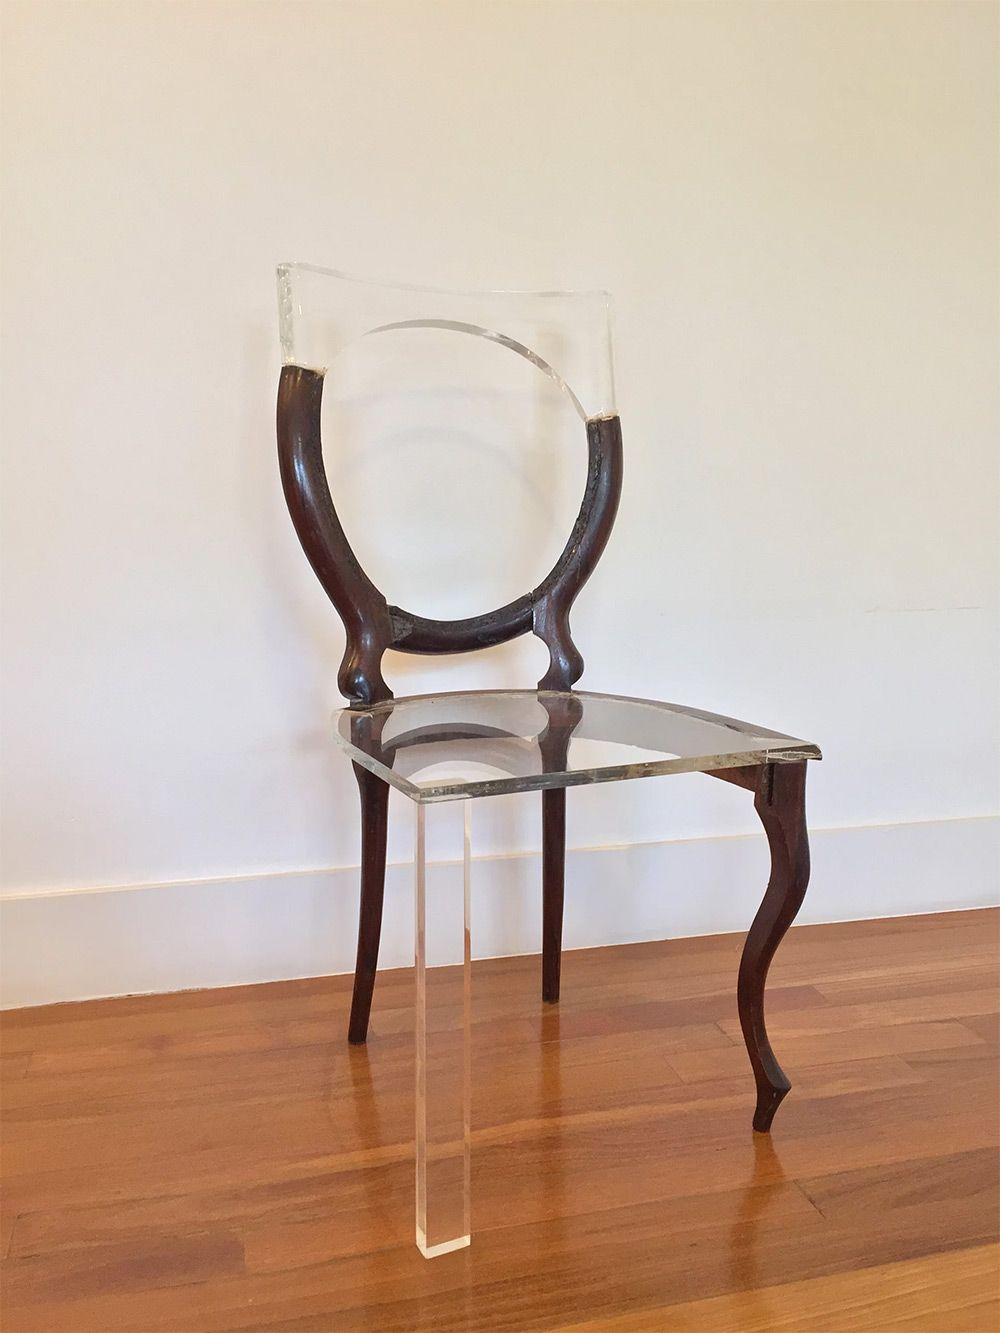 My New Old Chair Artist Fixes Broken Wood Furniture With Opposing Materials Resin Furniture Old Chair Patio Furniture Cleaner